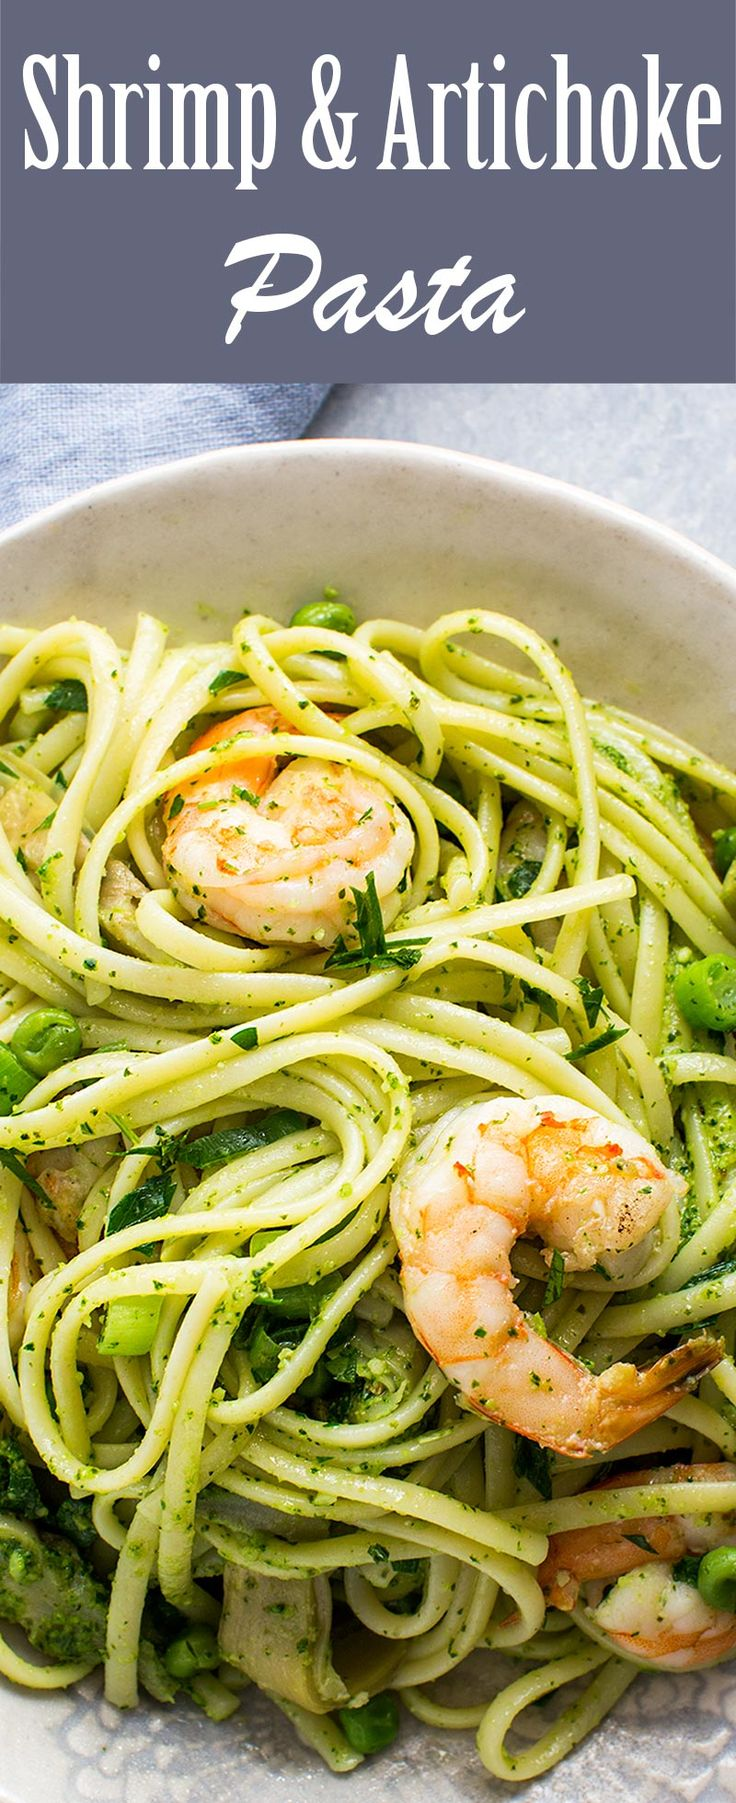 Shrimp and Artichoke Pasta! 30 min, EASY With basil pesto and peas. A quick, pull-together midweek dinner